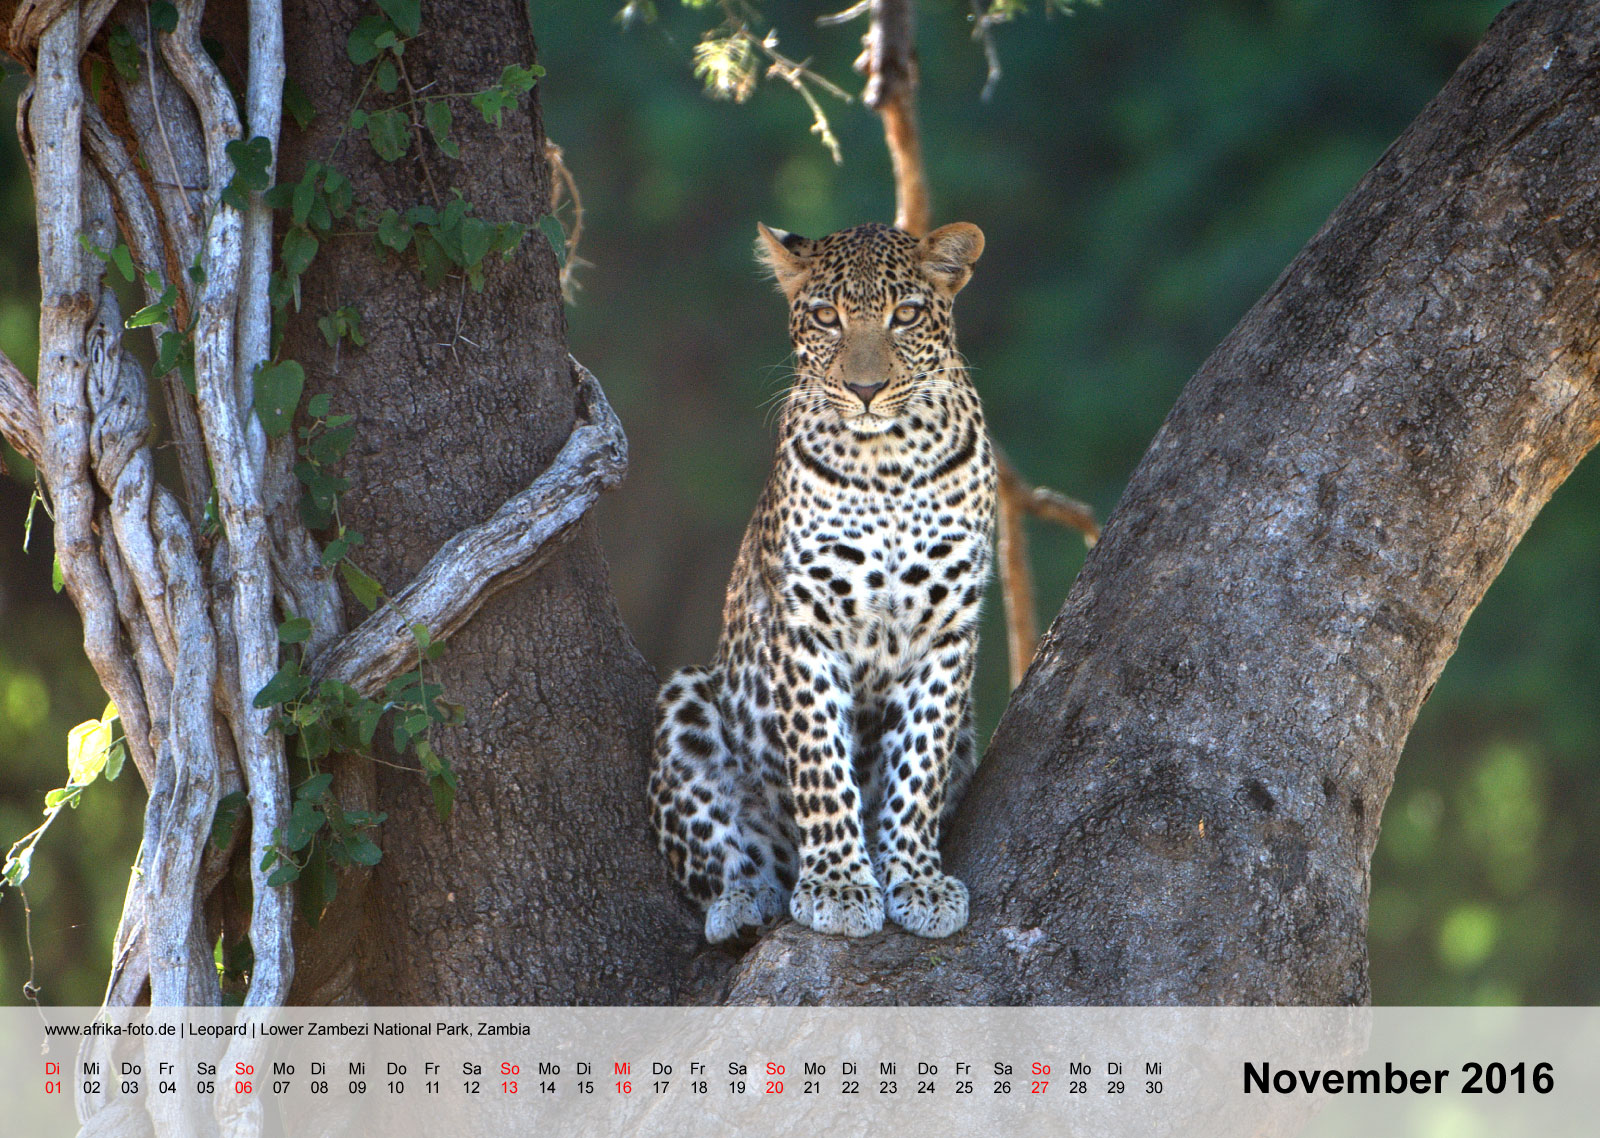 Leopard | Lower Zambezi National Park, Zambia | Kalender 2016 - November